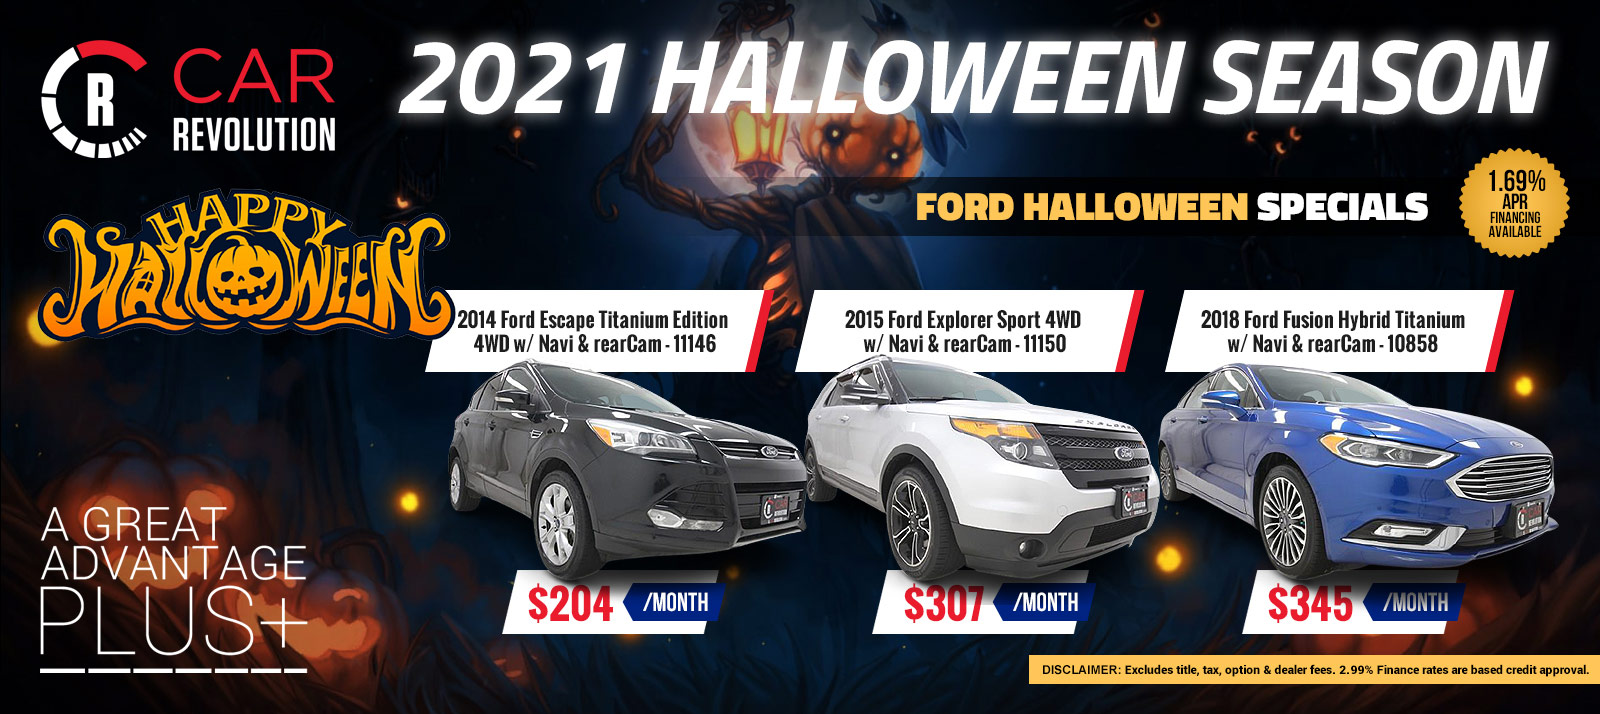 FORD Halloween Season Specials!